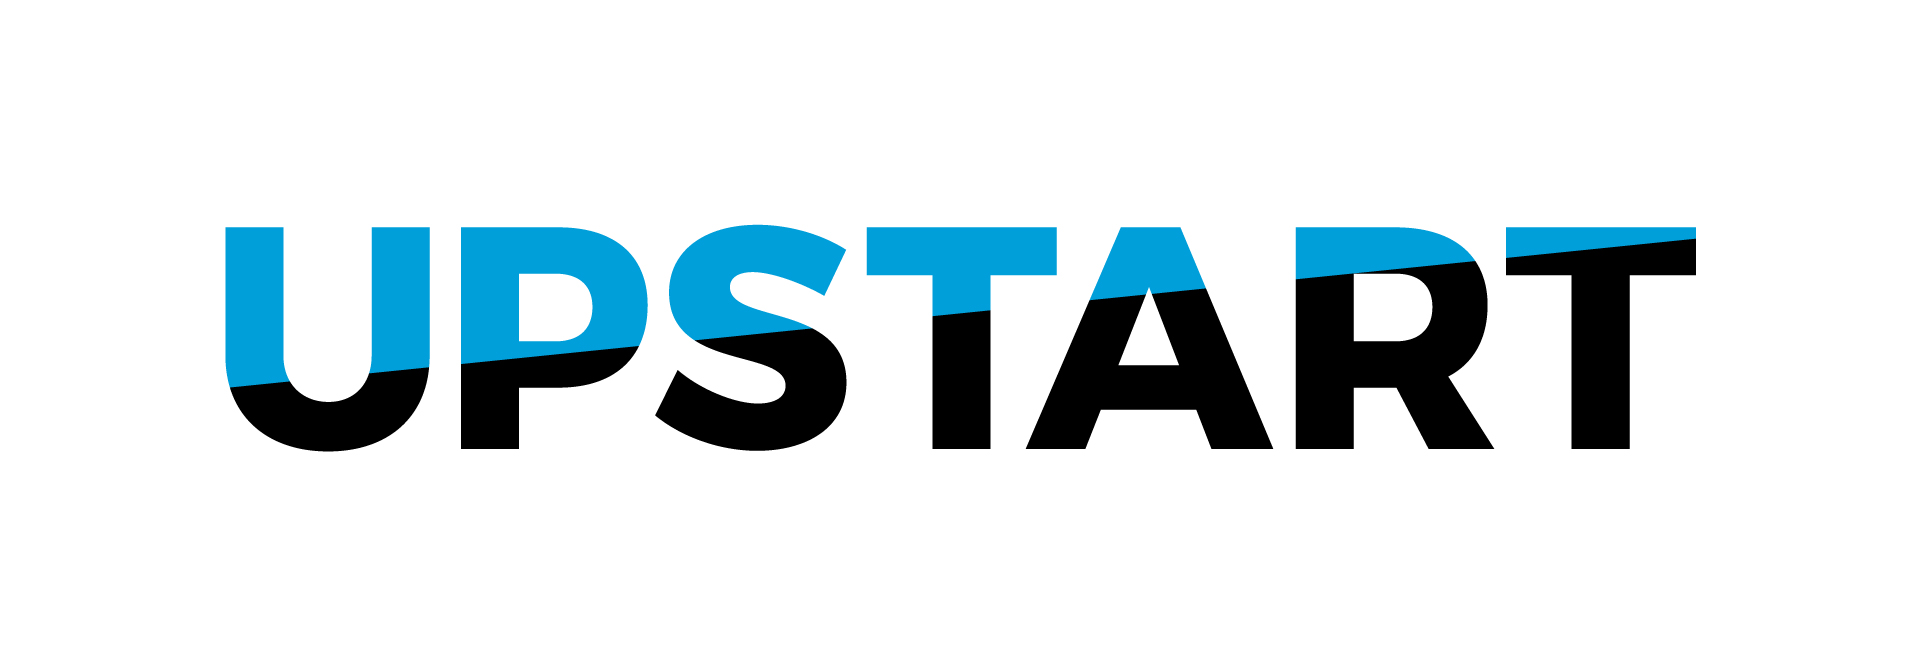 UpStart-Logo-Blue.jpg